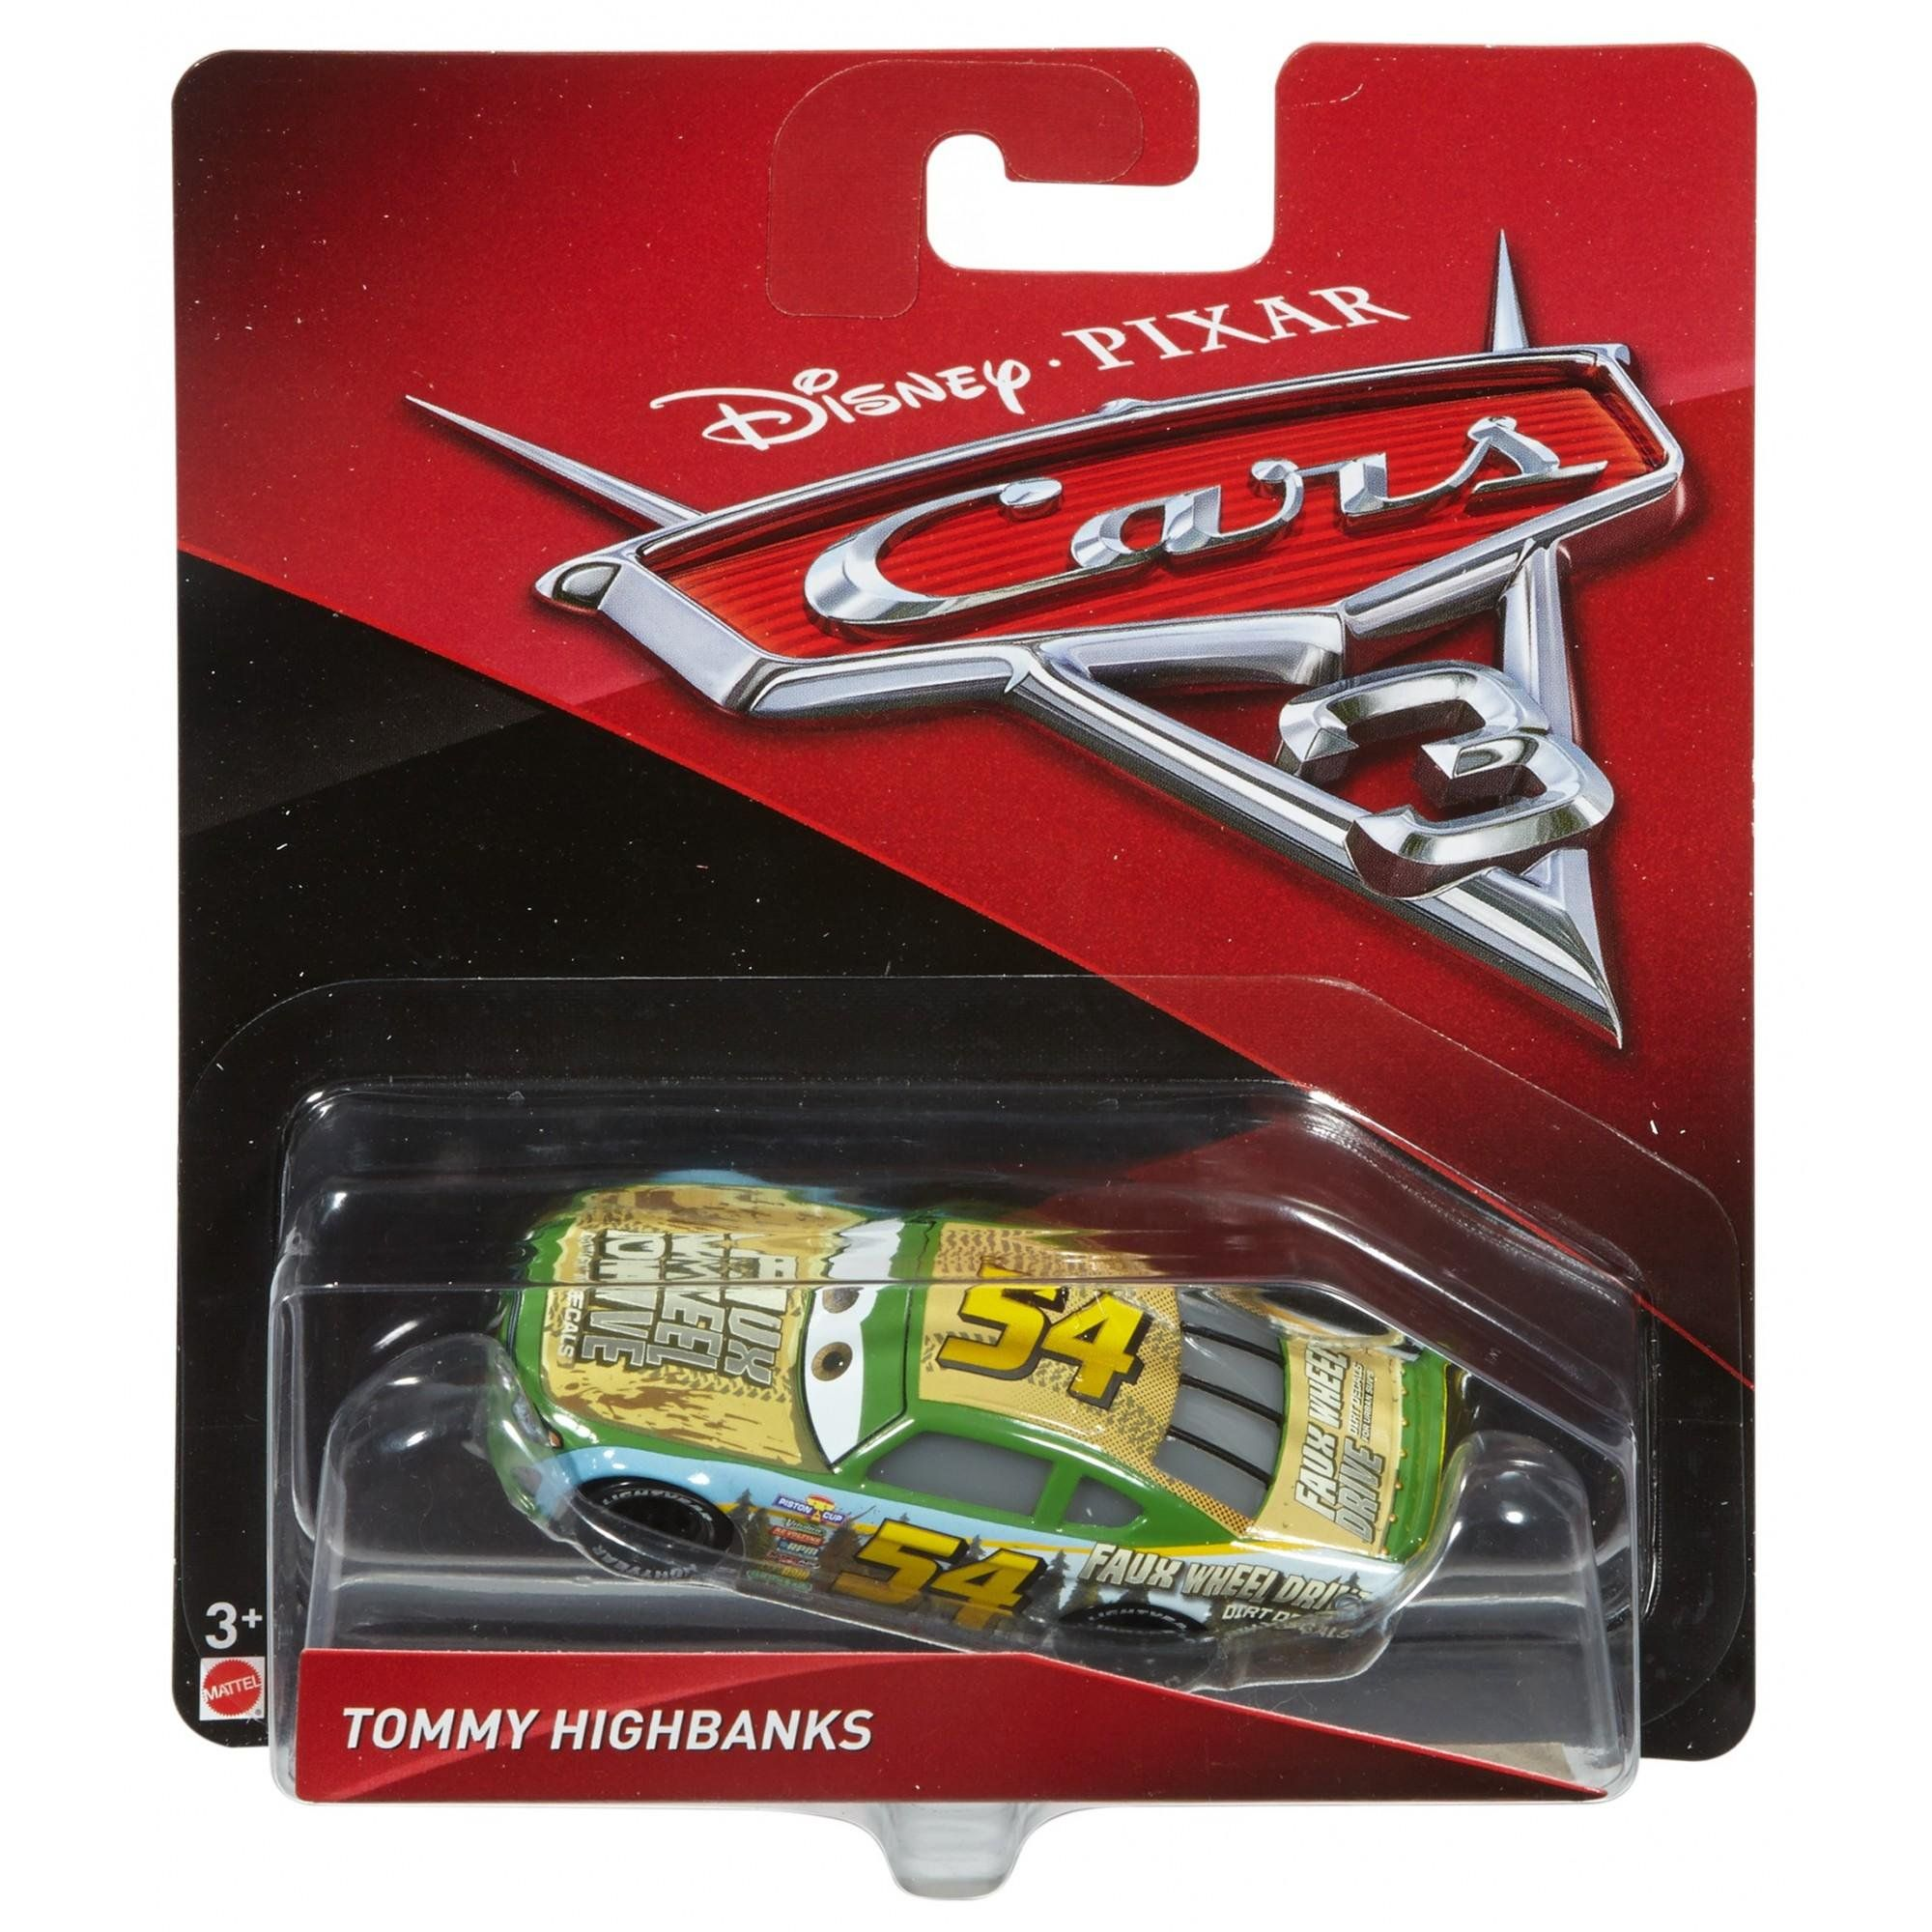 Disney/Pixar Cars 3 Tommy Highbanks Die-Cast Vehicle